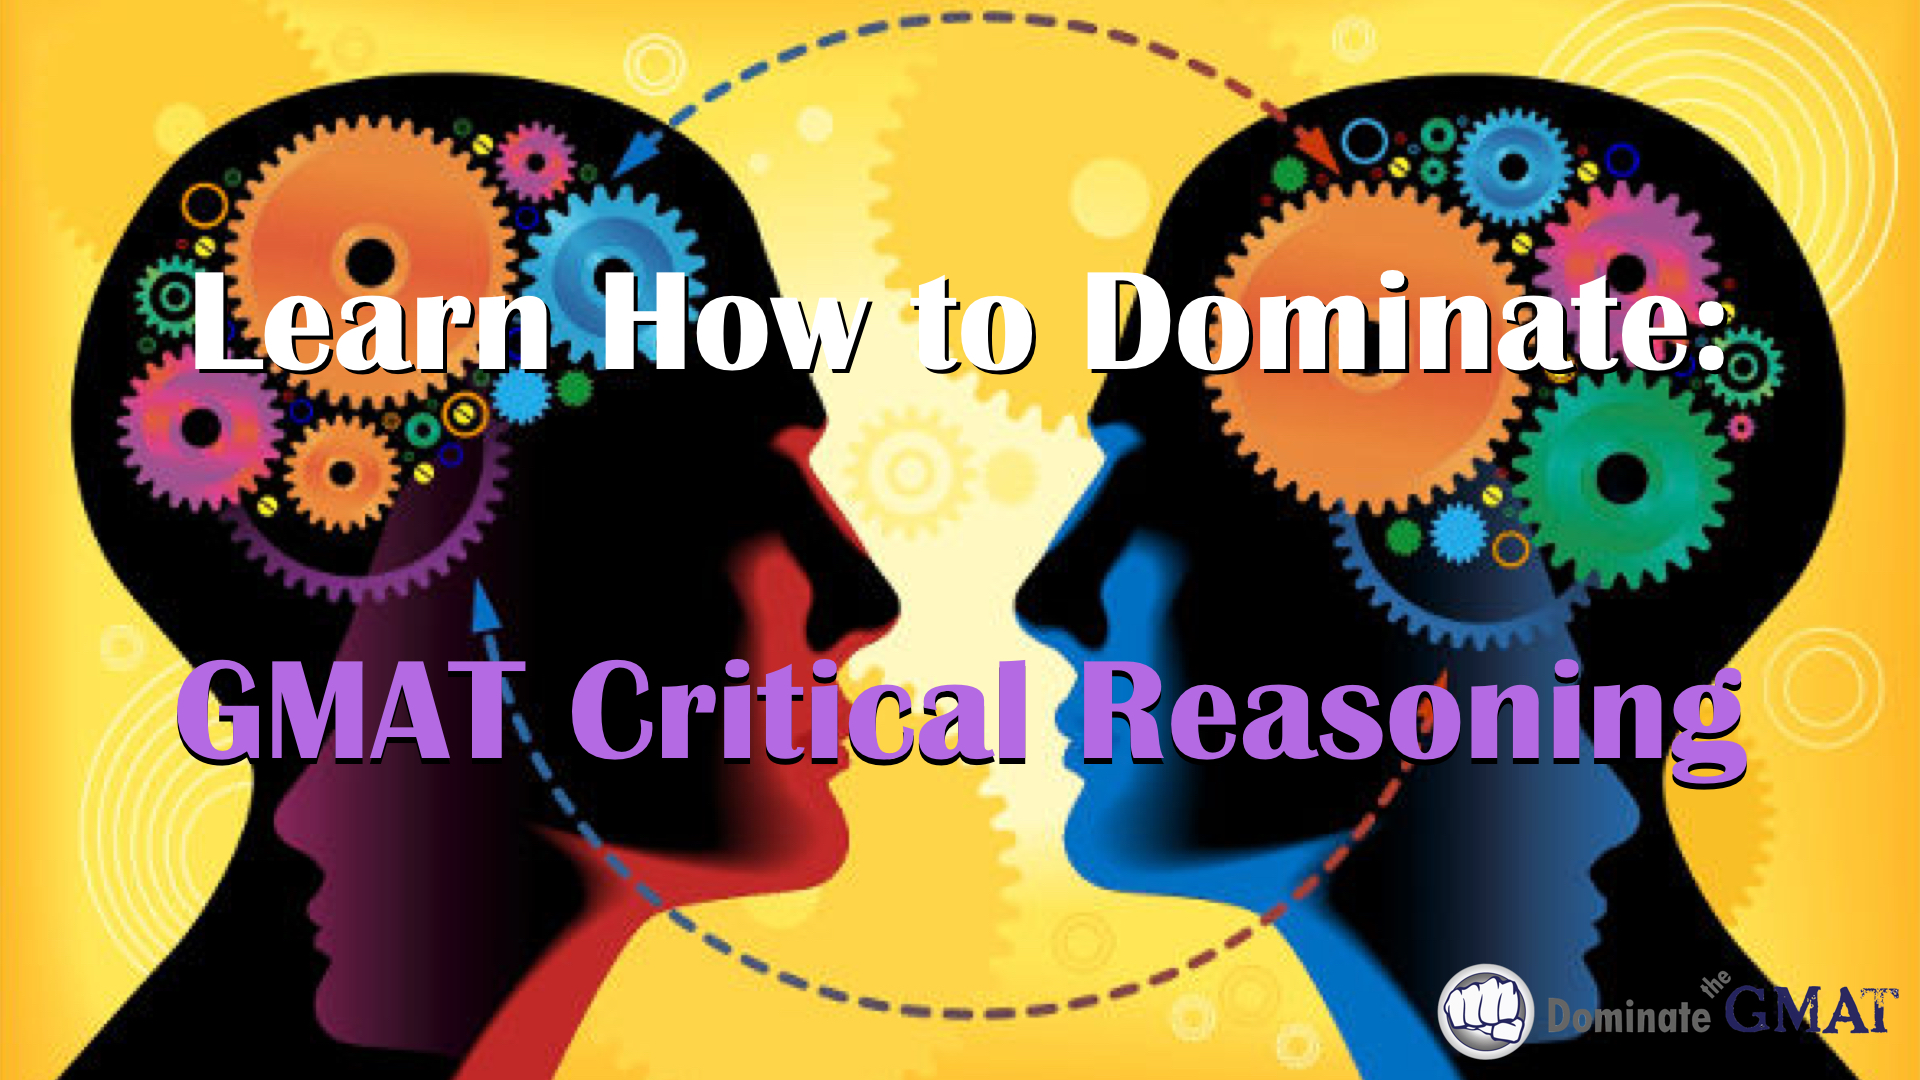 GMAT Critical Reasoning Video Course